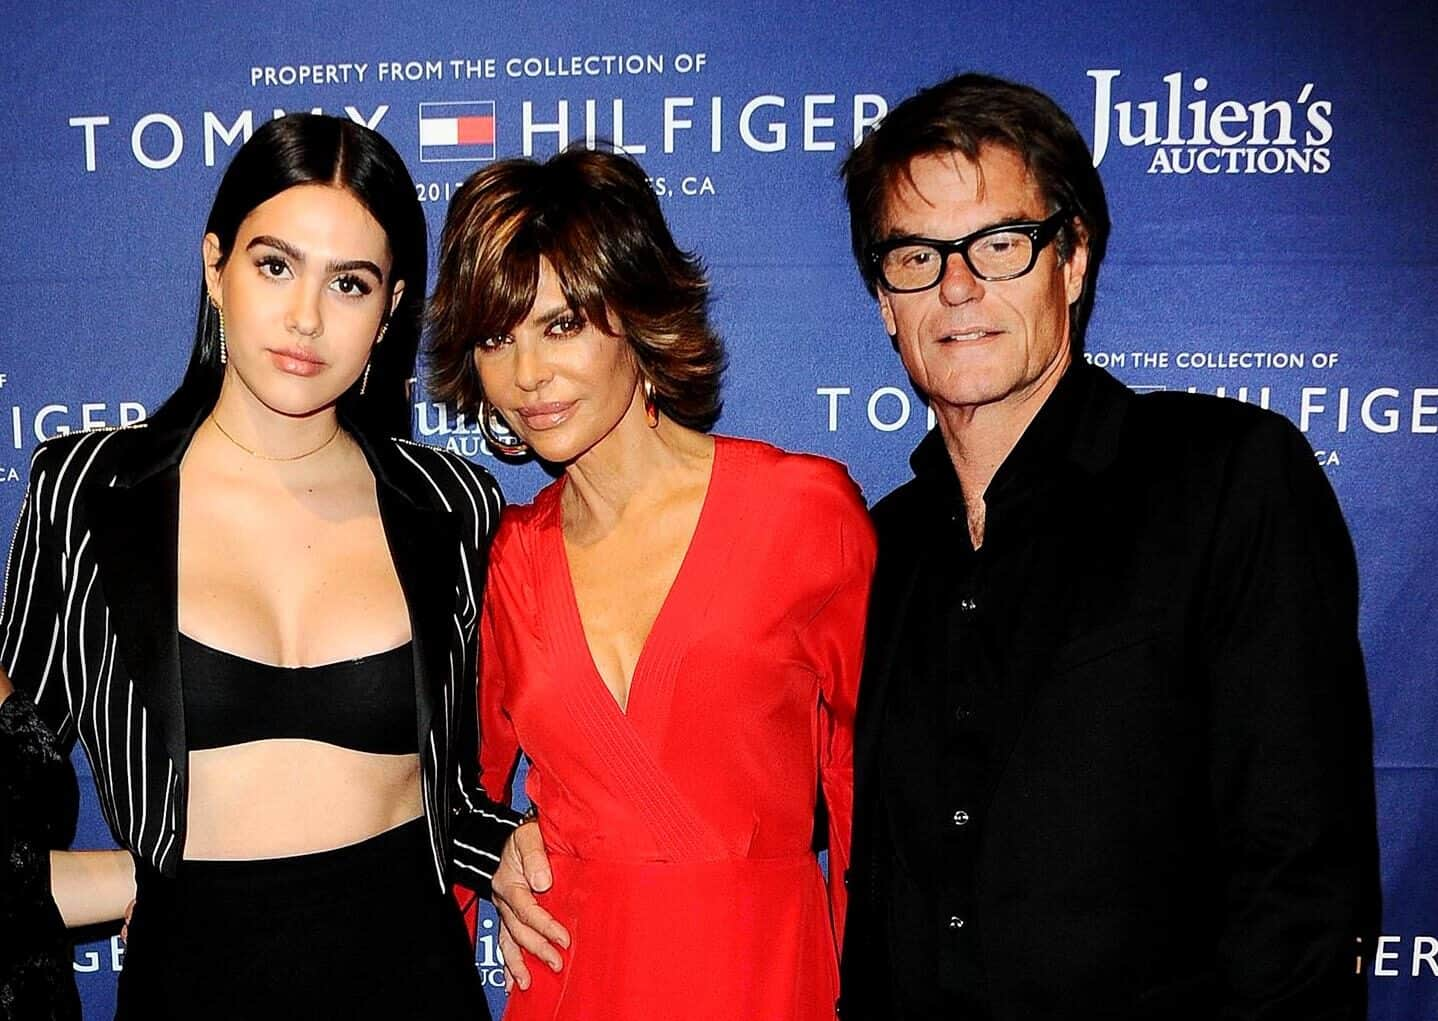 Lisa Rinna's Daughter Amelia Gray Hamlin Addresses Behavior at RHOBH Dinner, Opens Up About the Reality of Anorexia